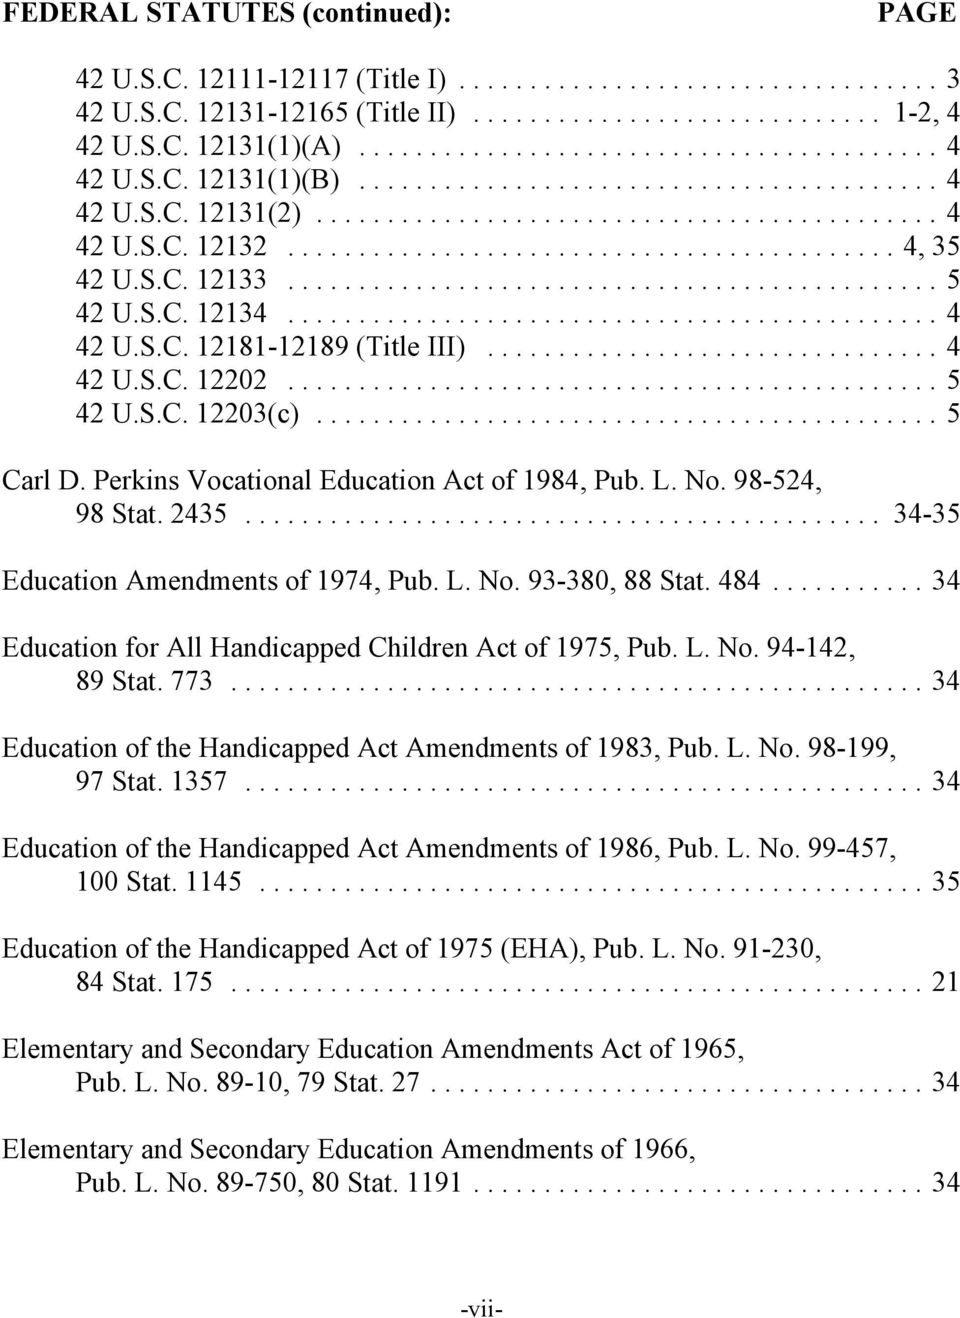 98-524, 98 Stat. 2435... 34-35 Education Amendments of 1974, Pub. L. No. 93-380, 88 Stat. 484...34 Education for All Handicapped Children Act of 1975, Pub. L. No. 94-142, 89 Stat. 773.